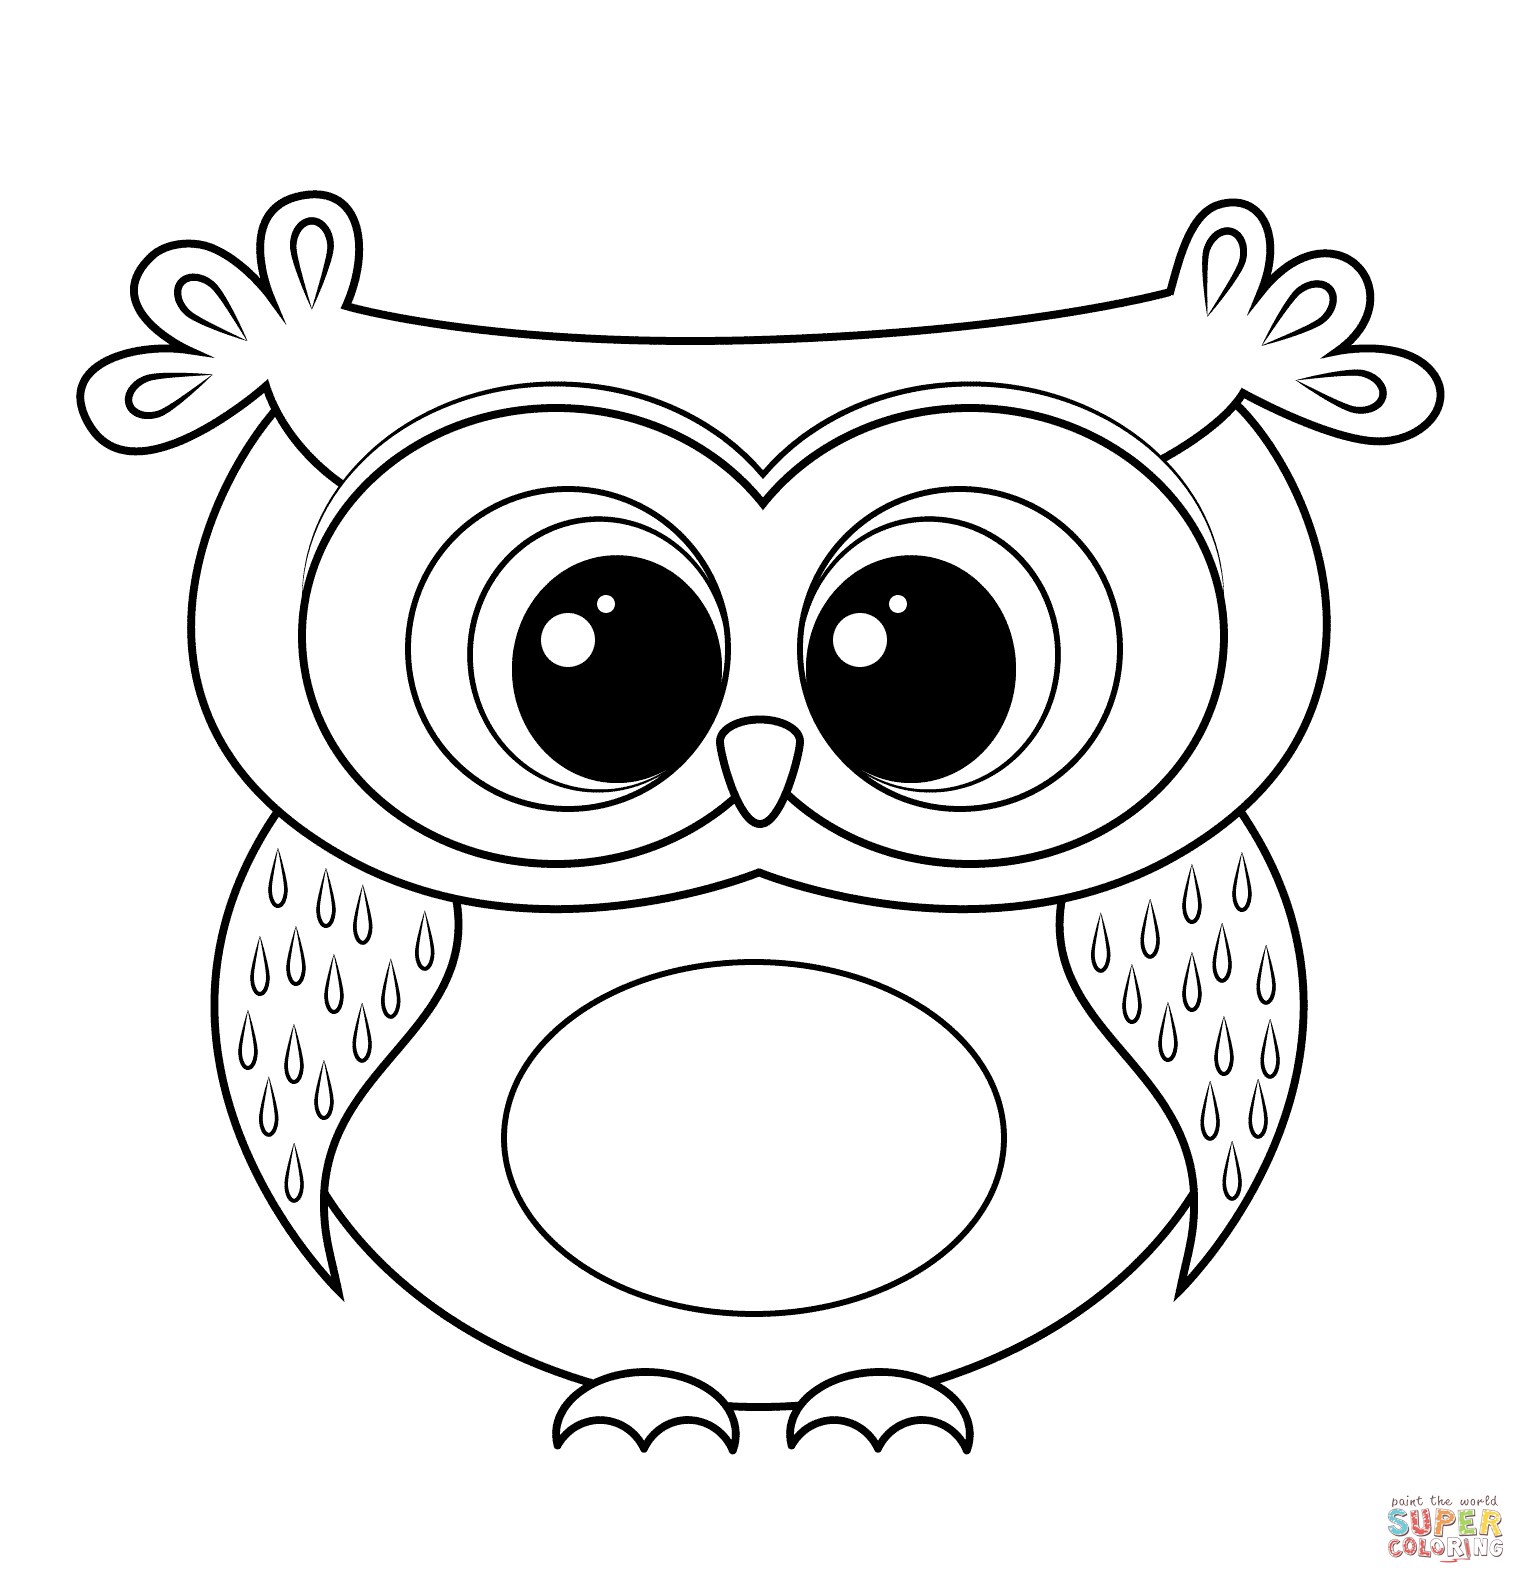 owl coloring pages for kids owl coloring pages for kids printable coloring pages 2 pages coloring owl kids for